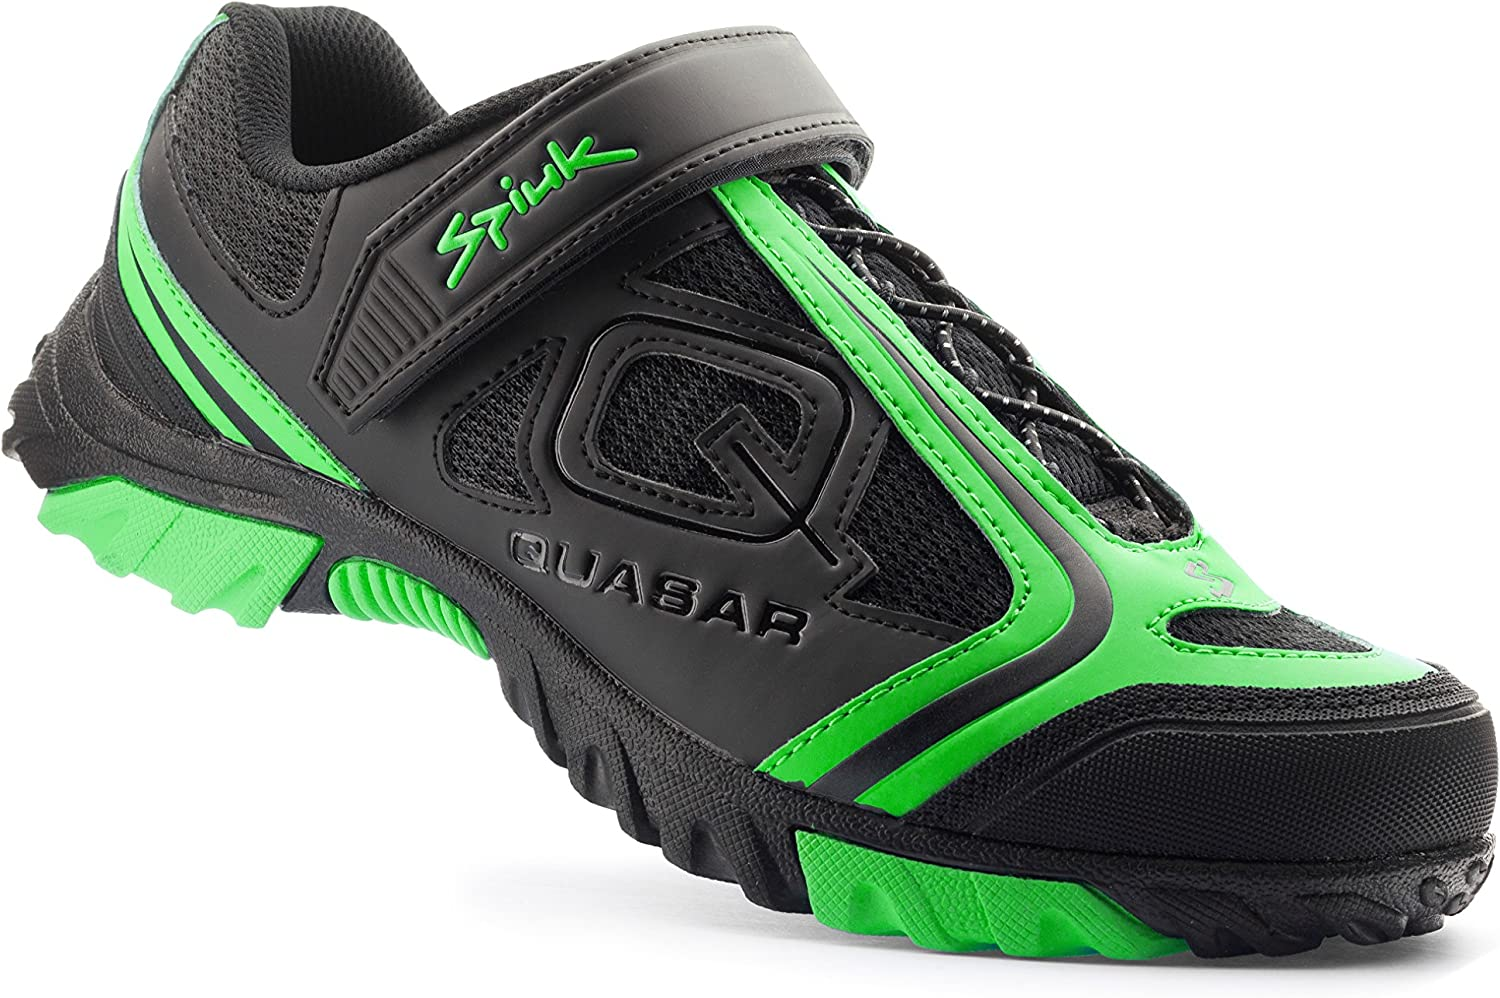 Spiuk Quasar Black-Green shoes 2017